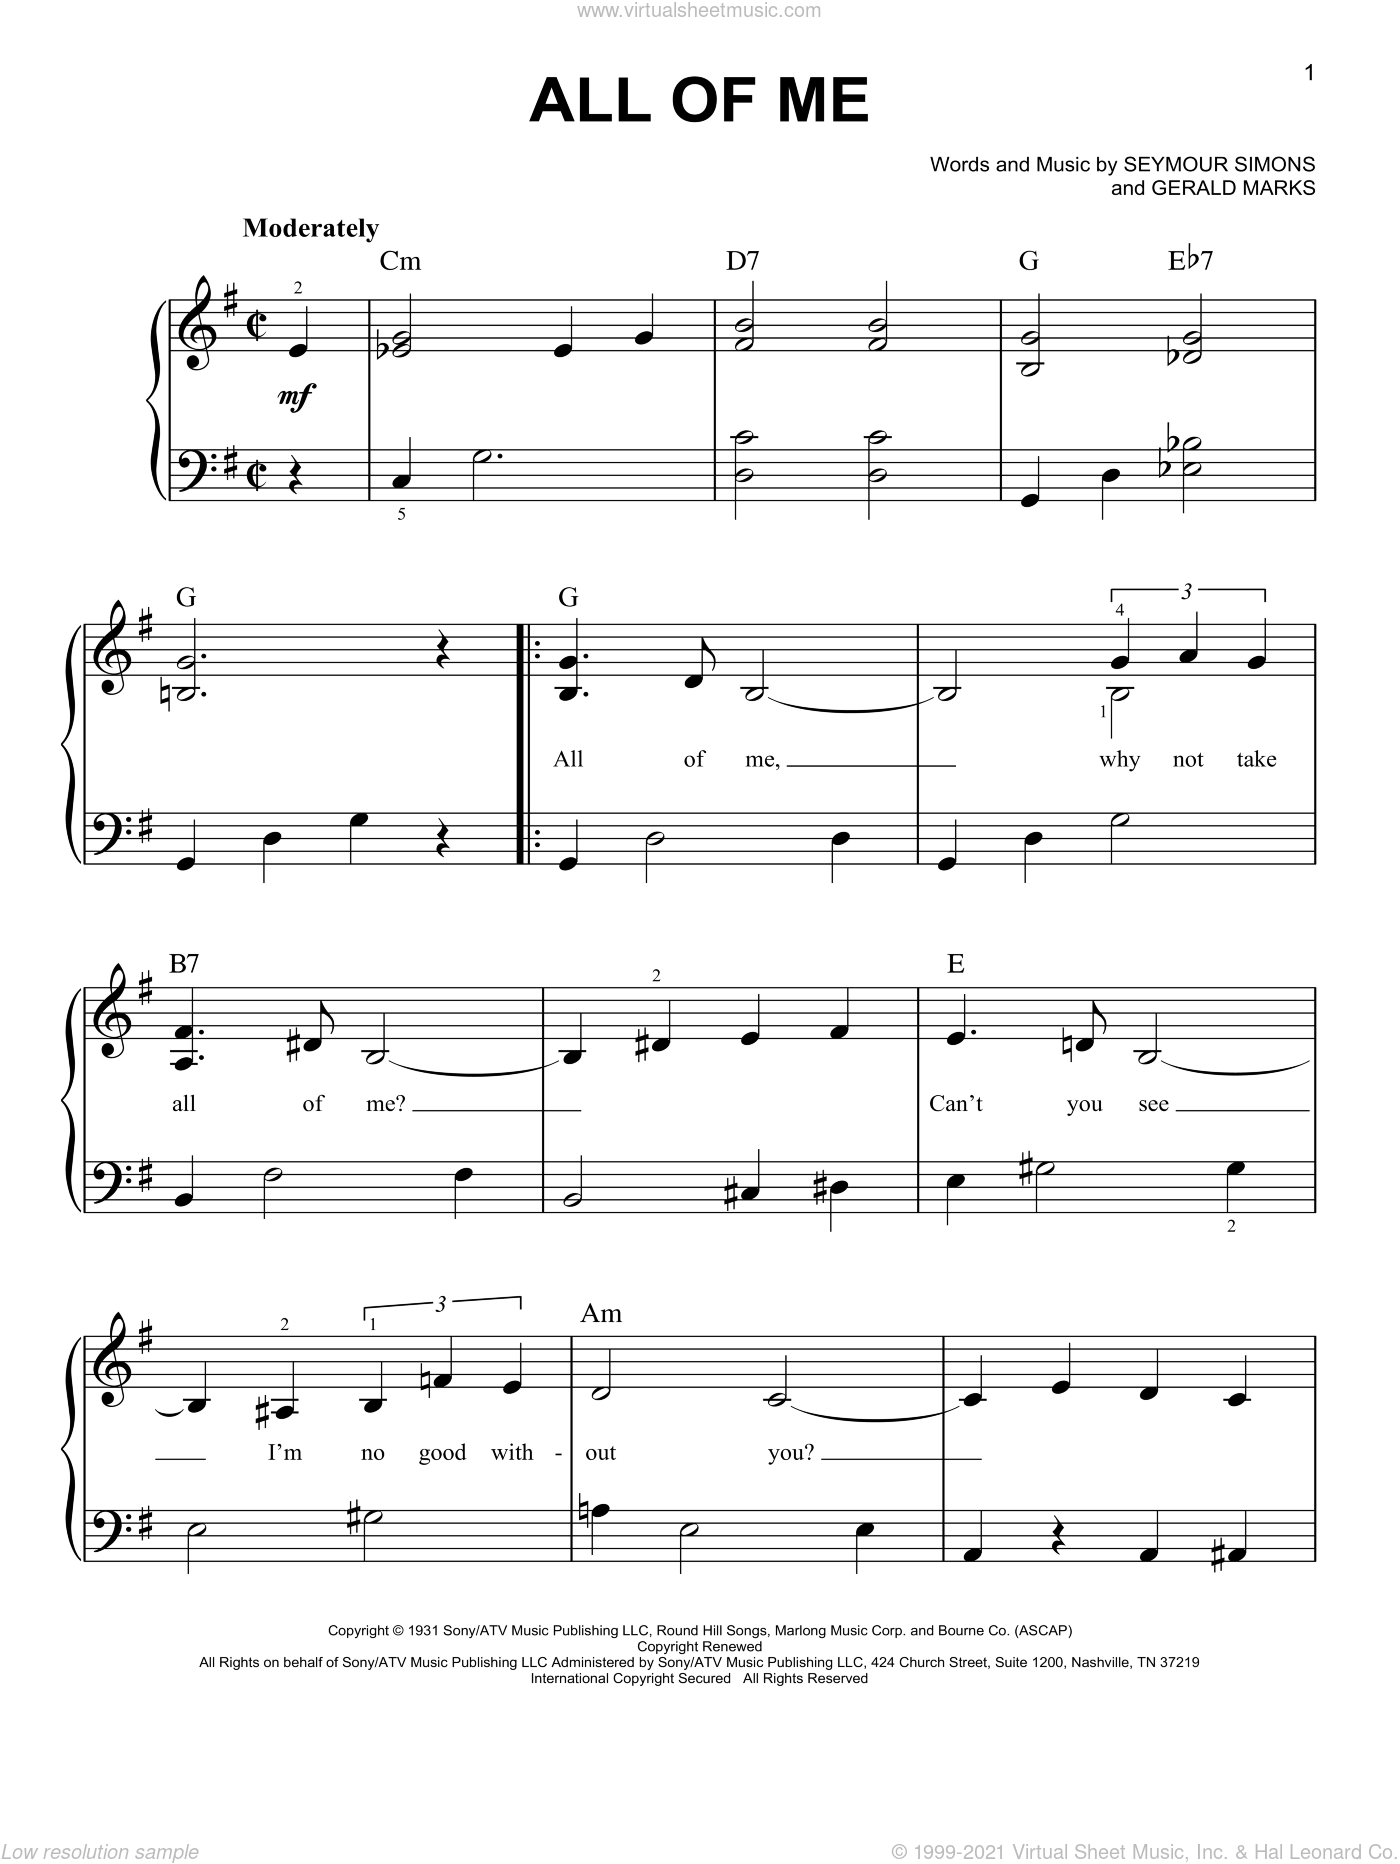 All Of Me sheet music for piano solo by Louis Armstrong, Frank Sinatra, Willie Nelson, Gerald Marks and Seymour Simons, easy skill level